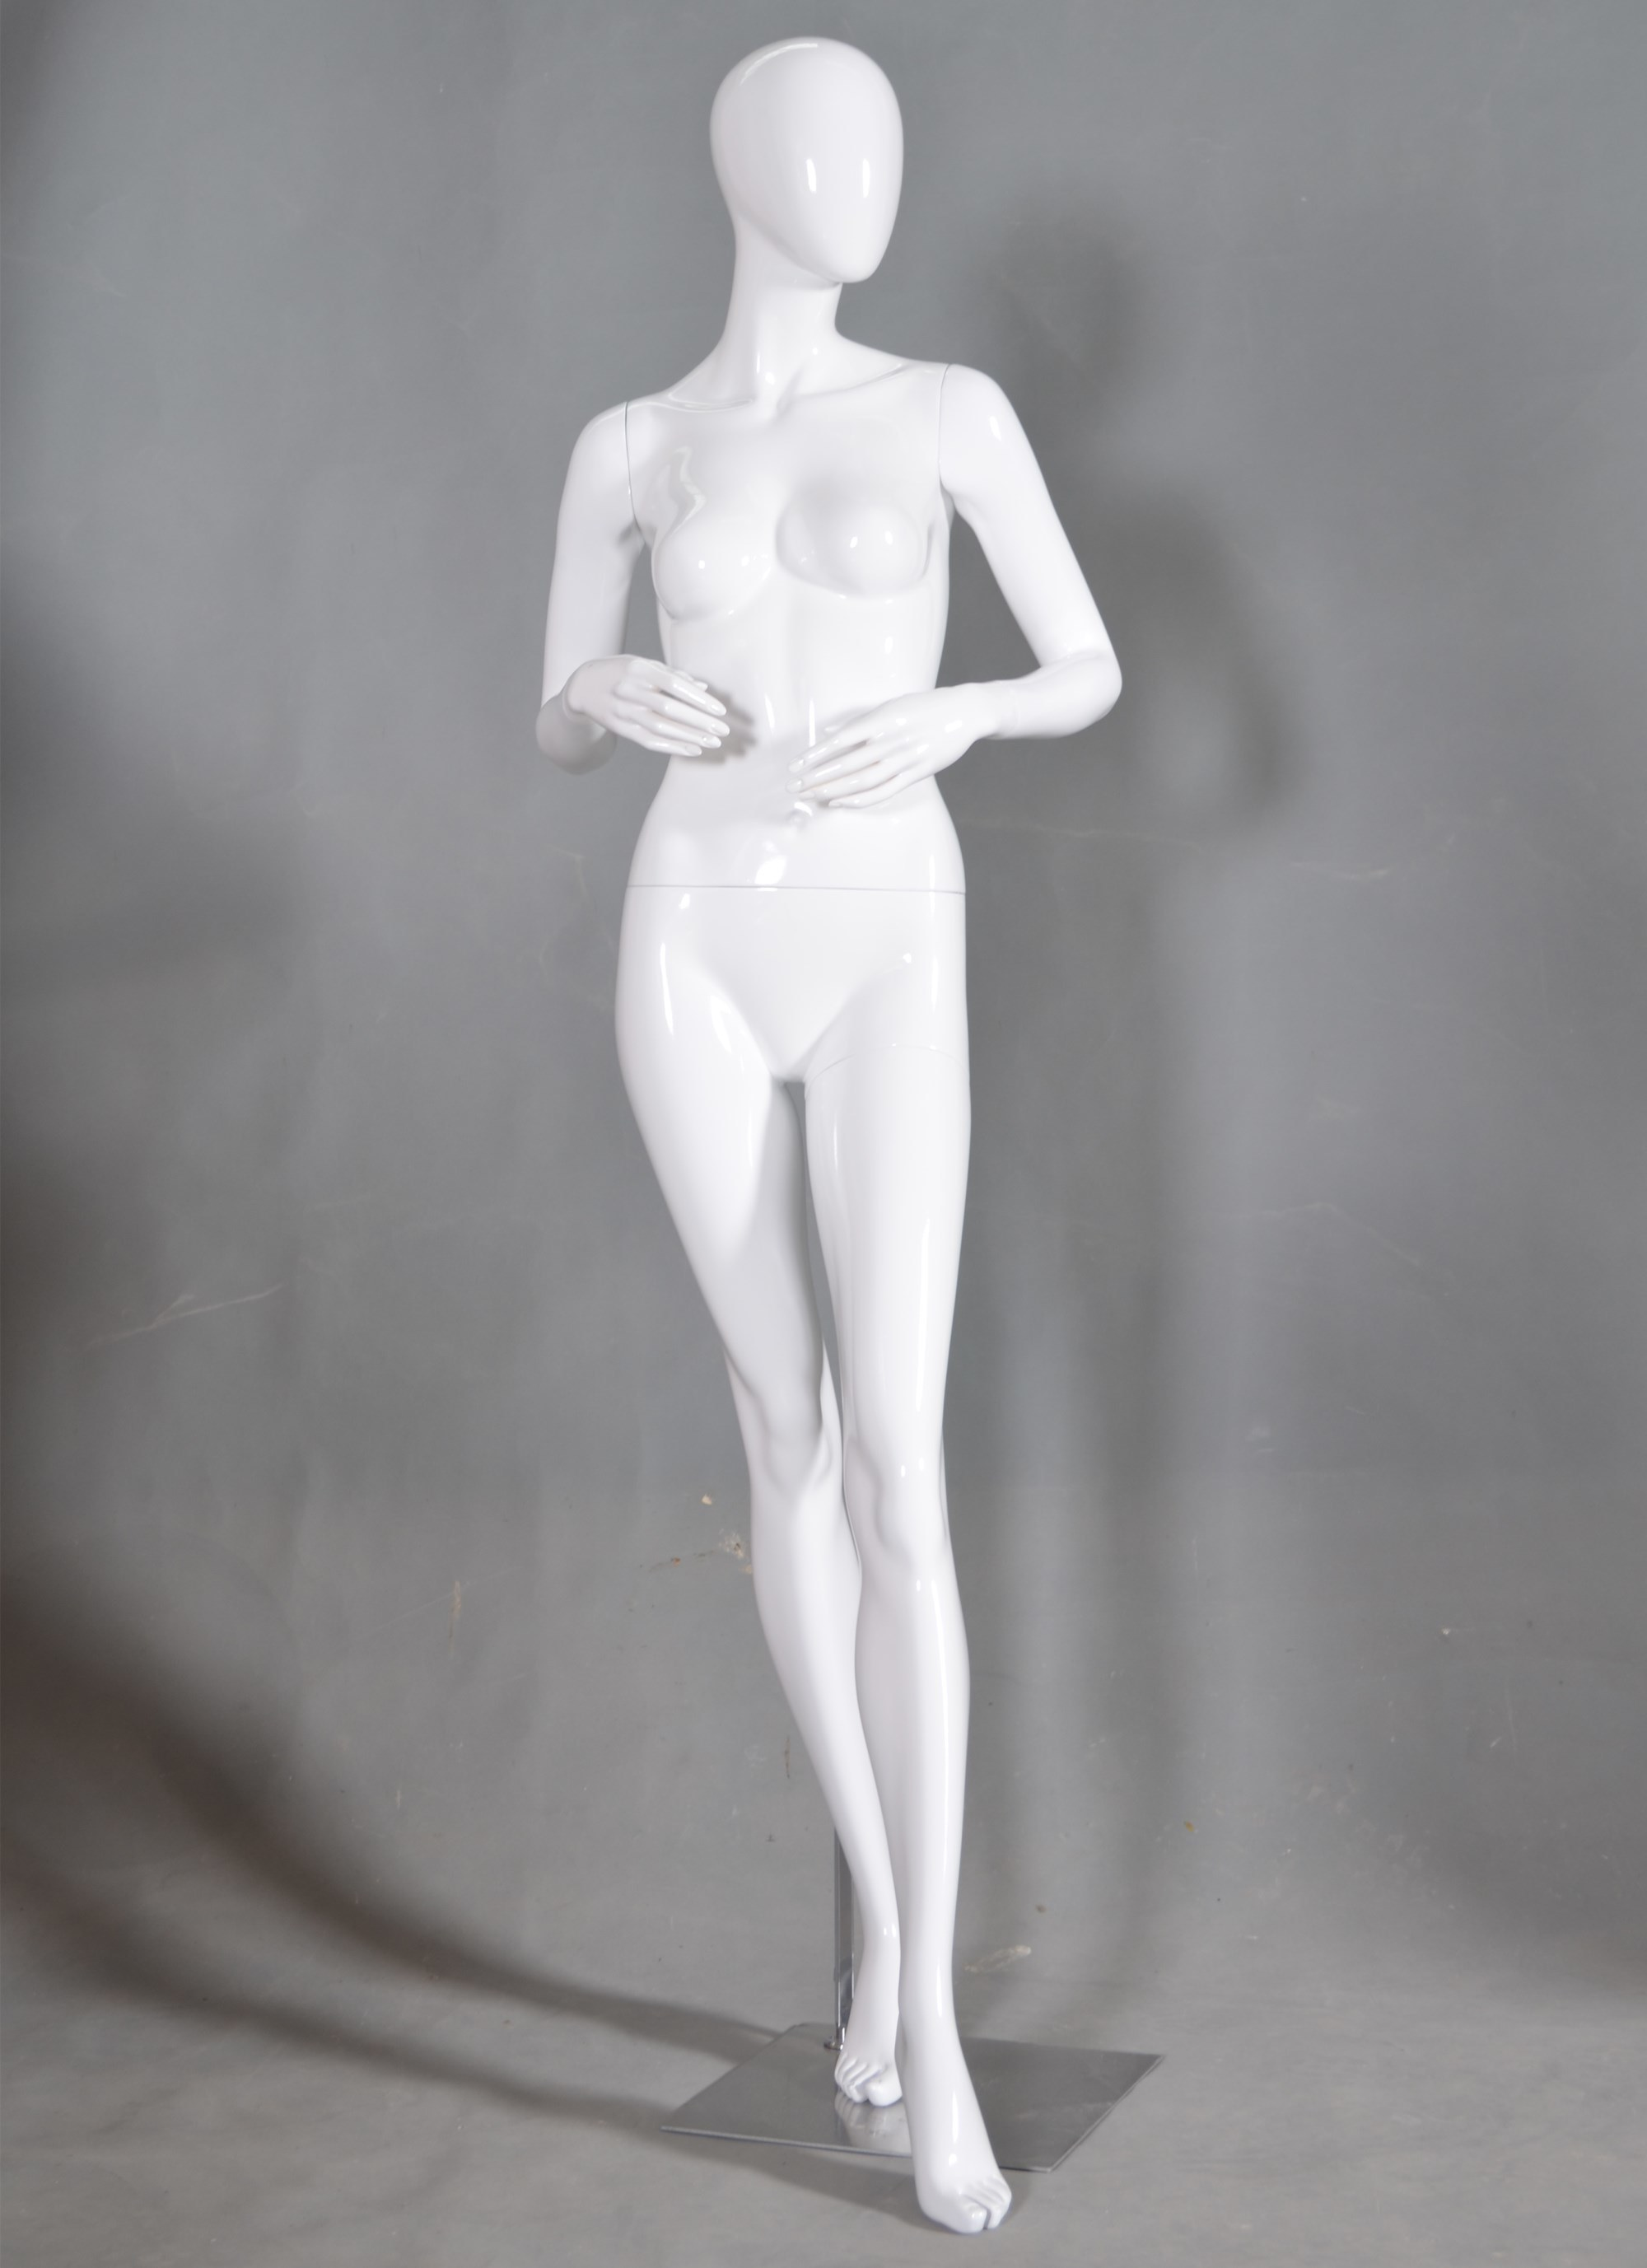 ODM Fashion Female Mannequin for Boutique Display